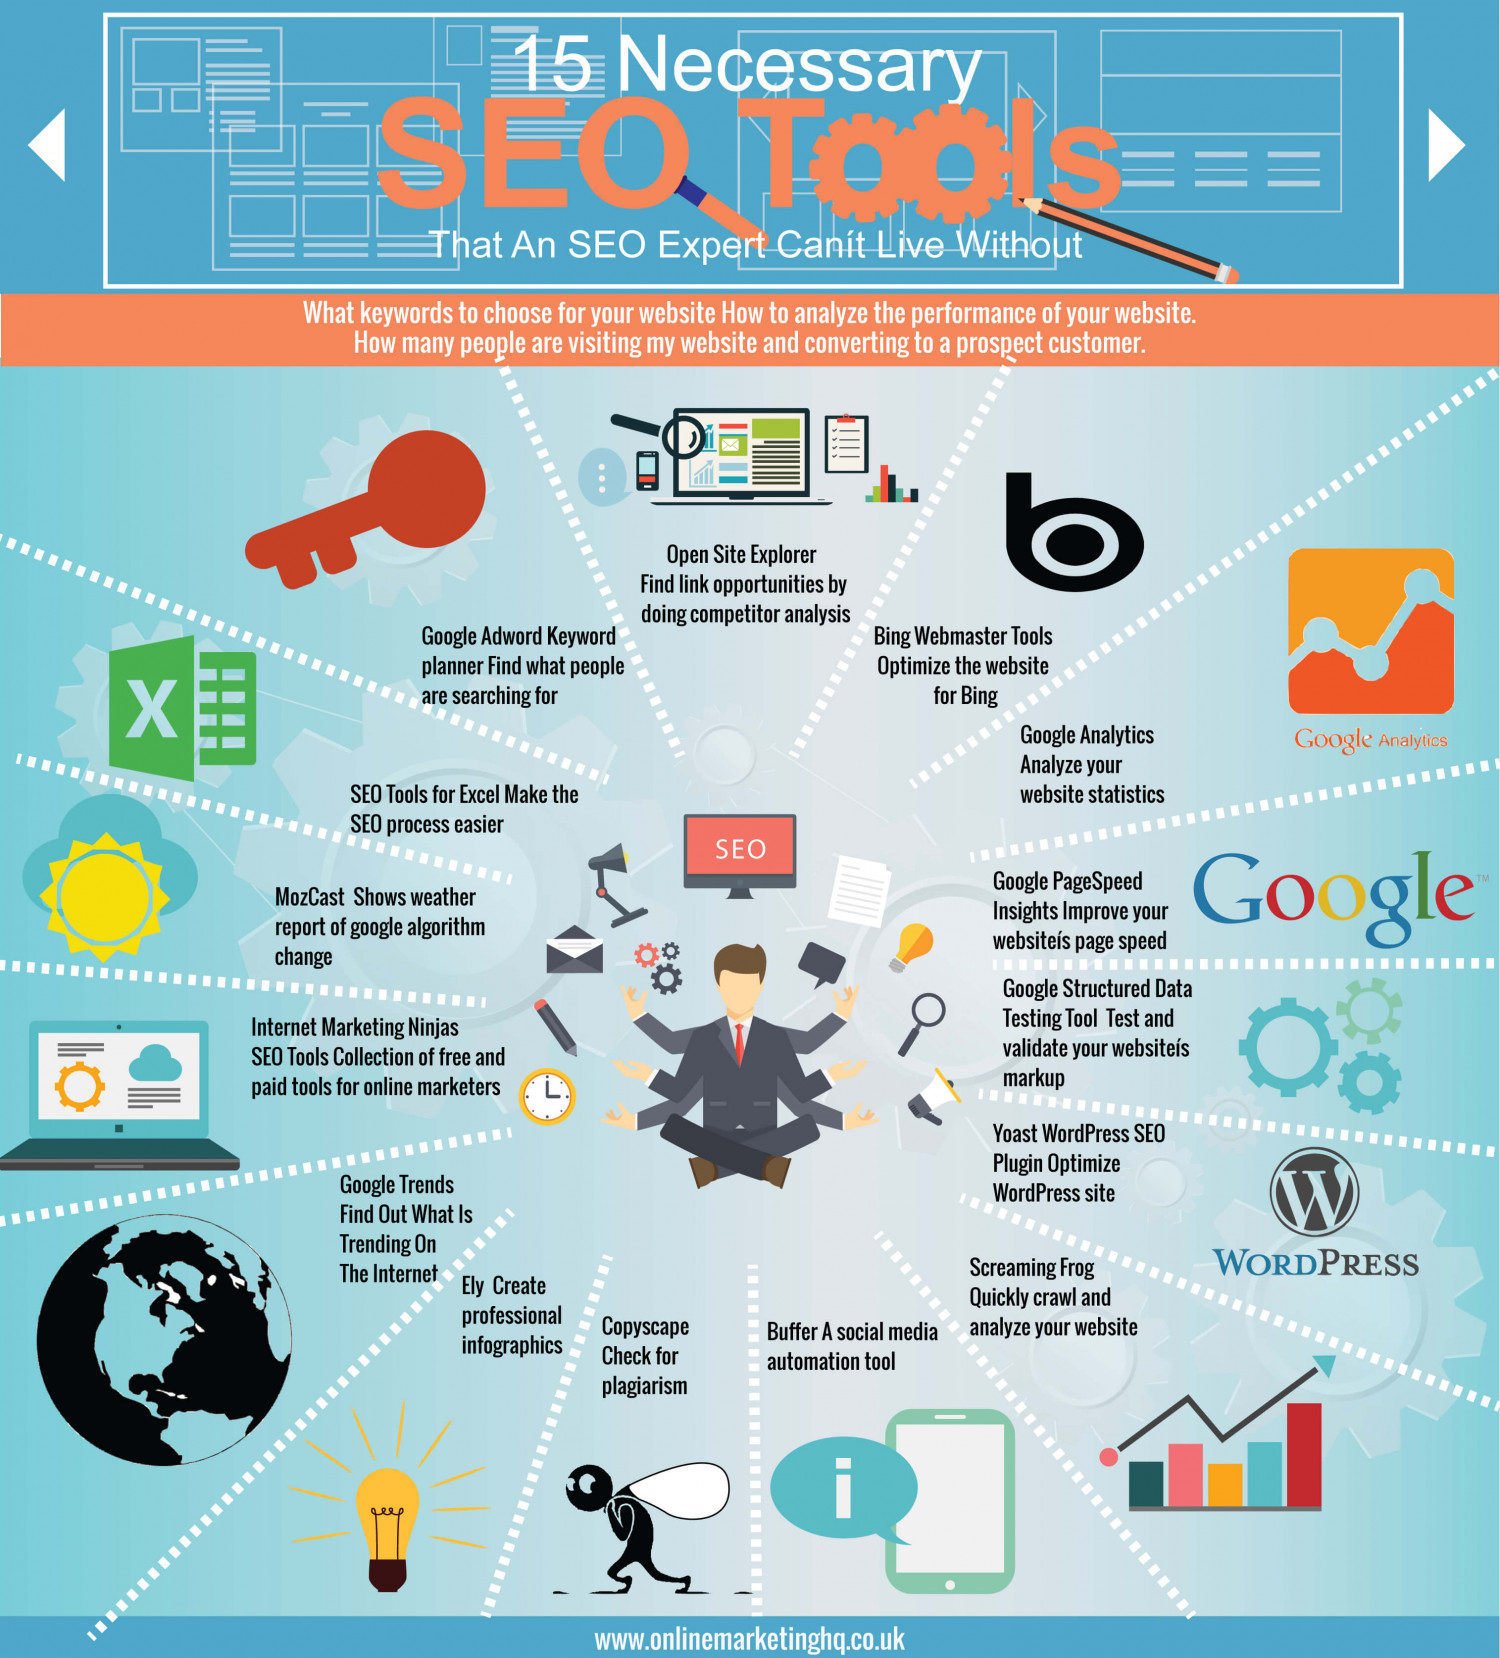 15 Necessary SEO Tools That An SEO Expert Can't Live Without Infographic